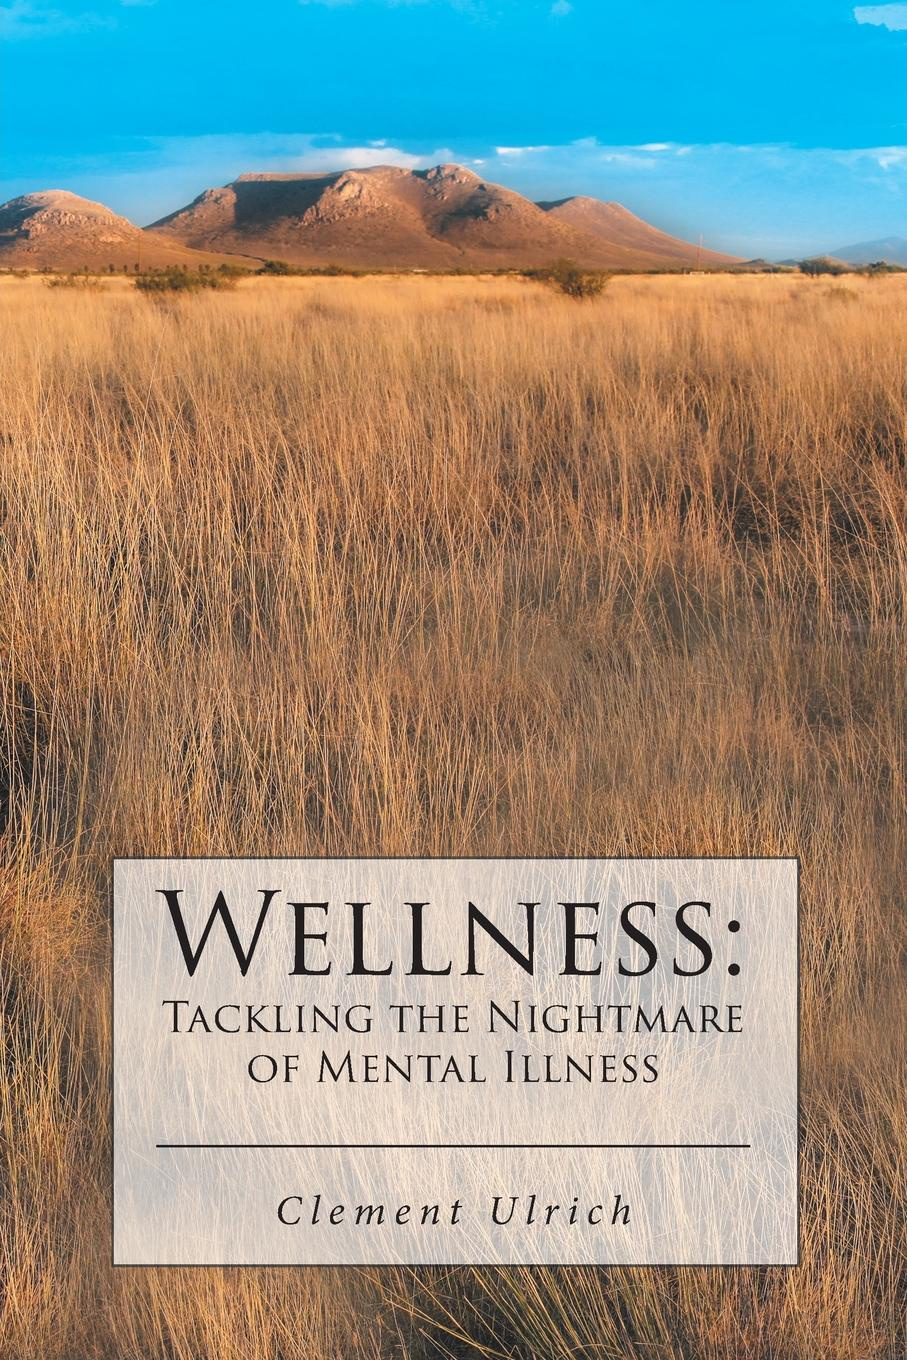 Clement Ulrich. Wellness. Tackling the Nightmare of Mental Illness